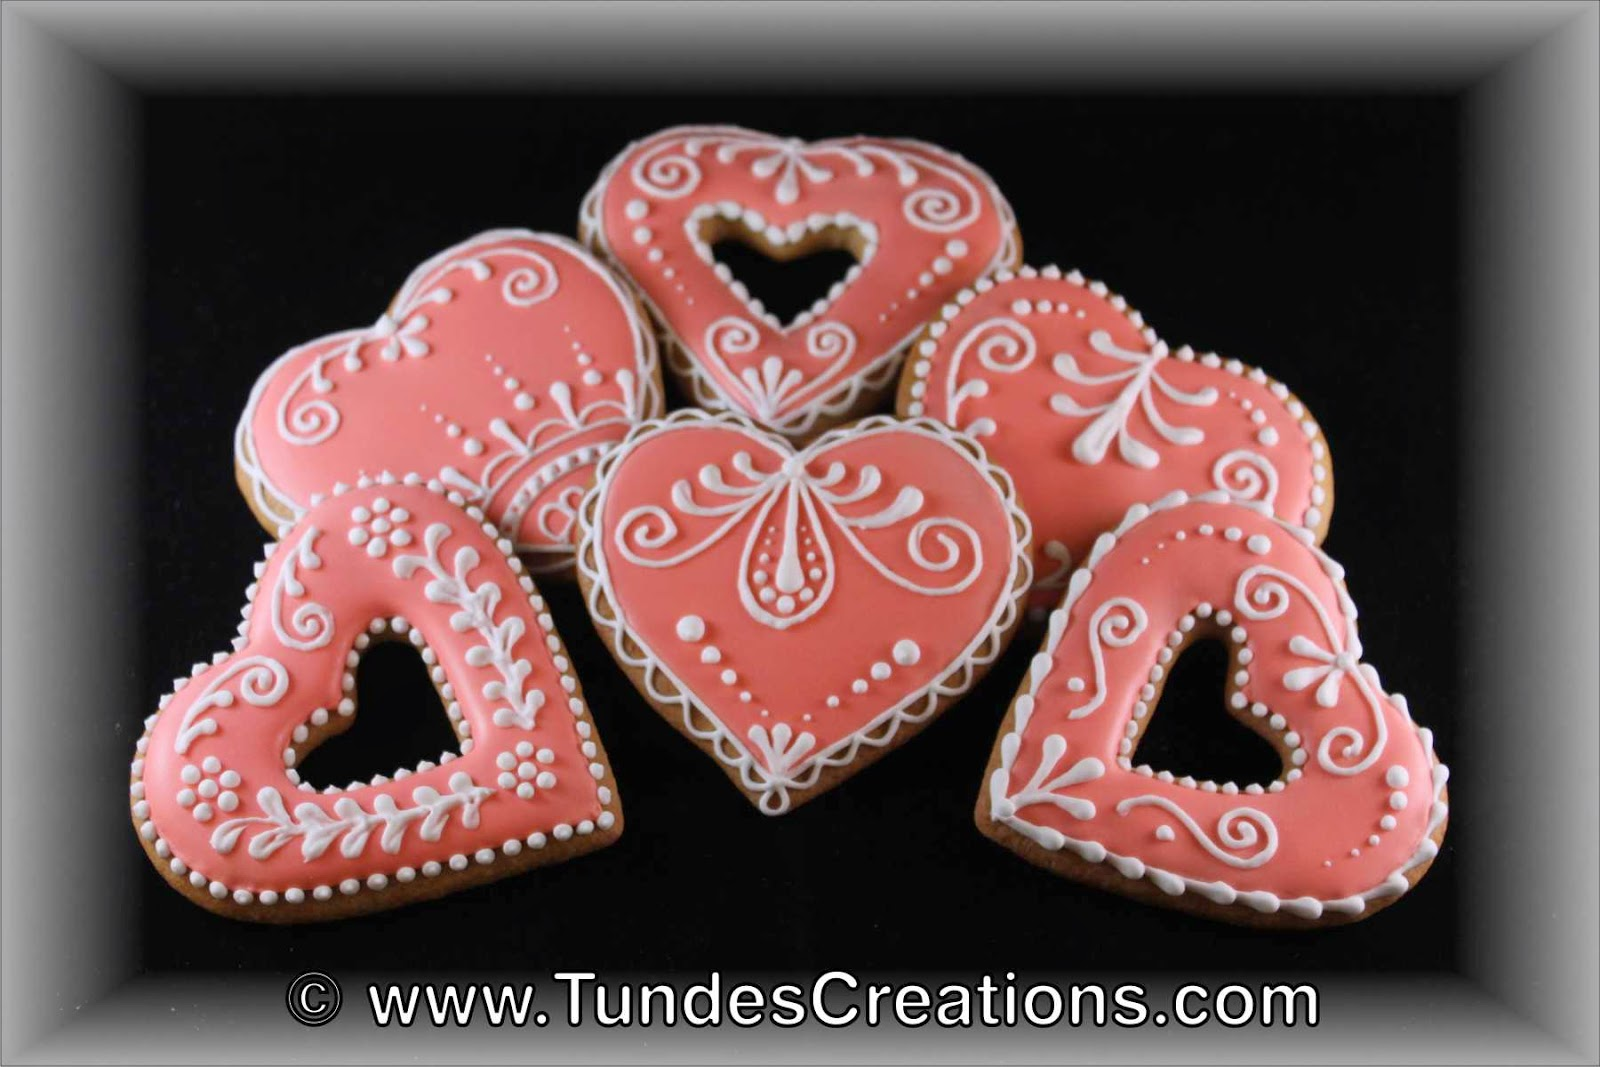 Pink and white traditional Valentine's gingerbread hearts.